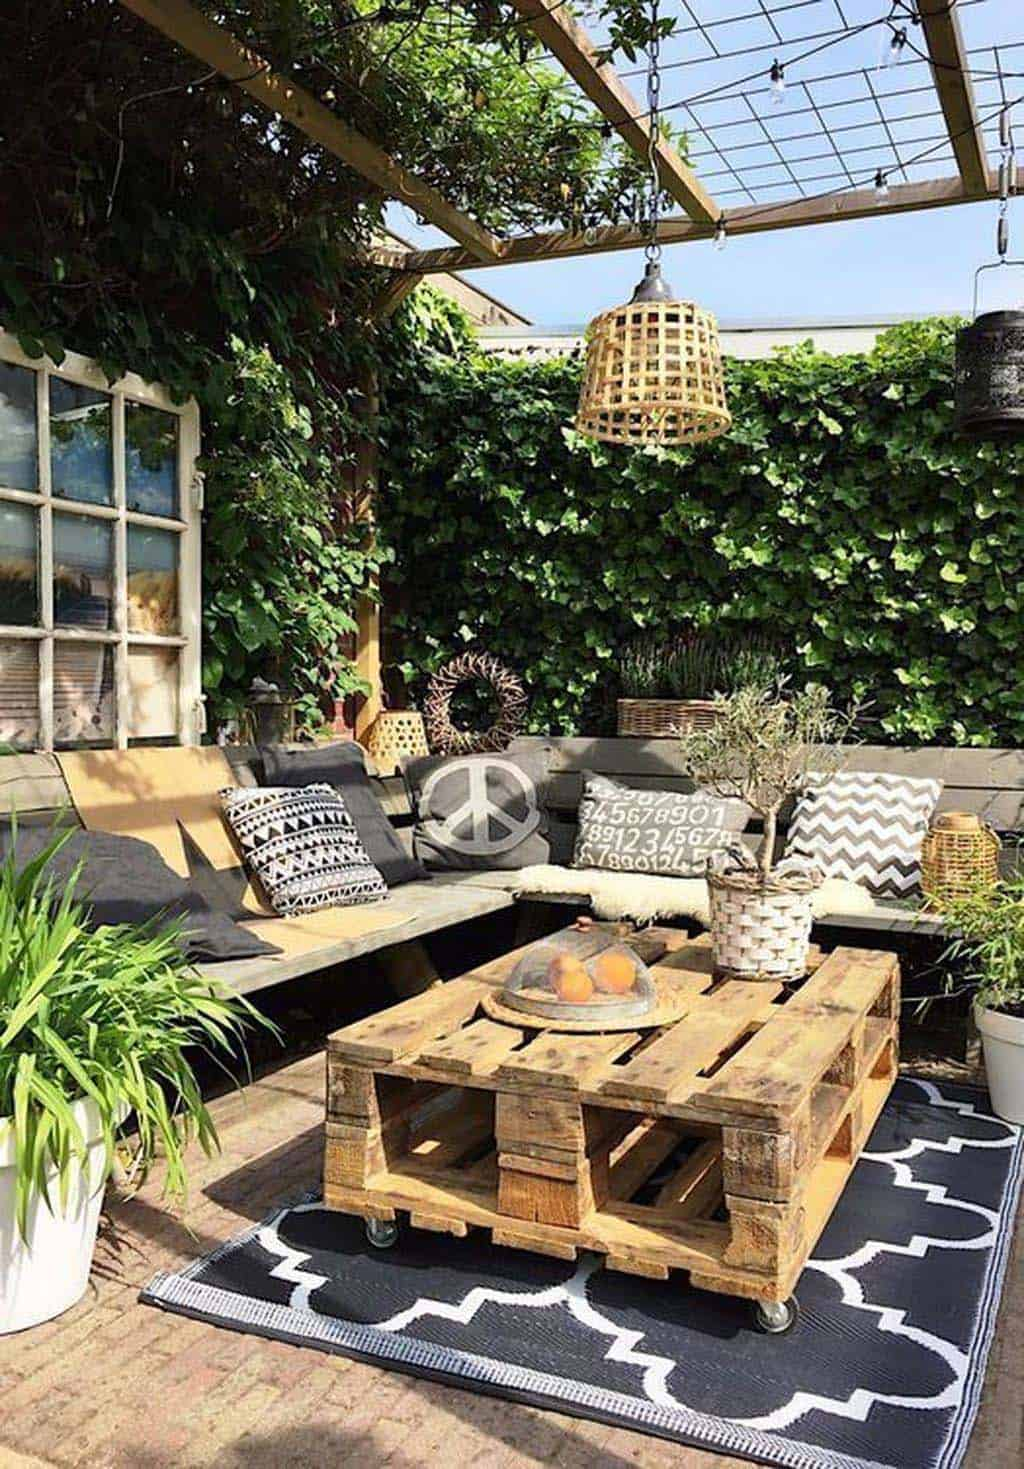 33 Fabulous Ideas For Creating Beautiful Outdoor Living Spaces on Beautiful Outdoor Living Spaces id=14464